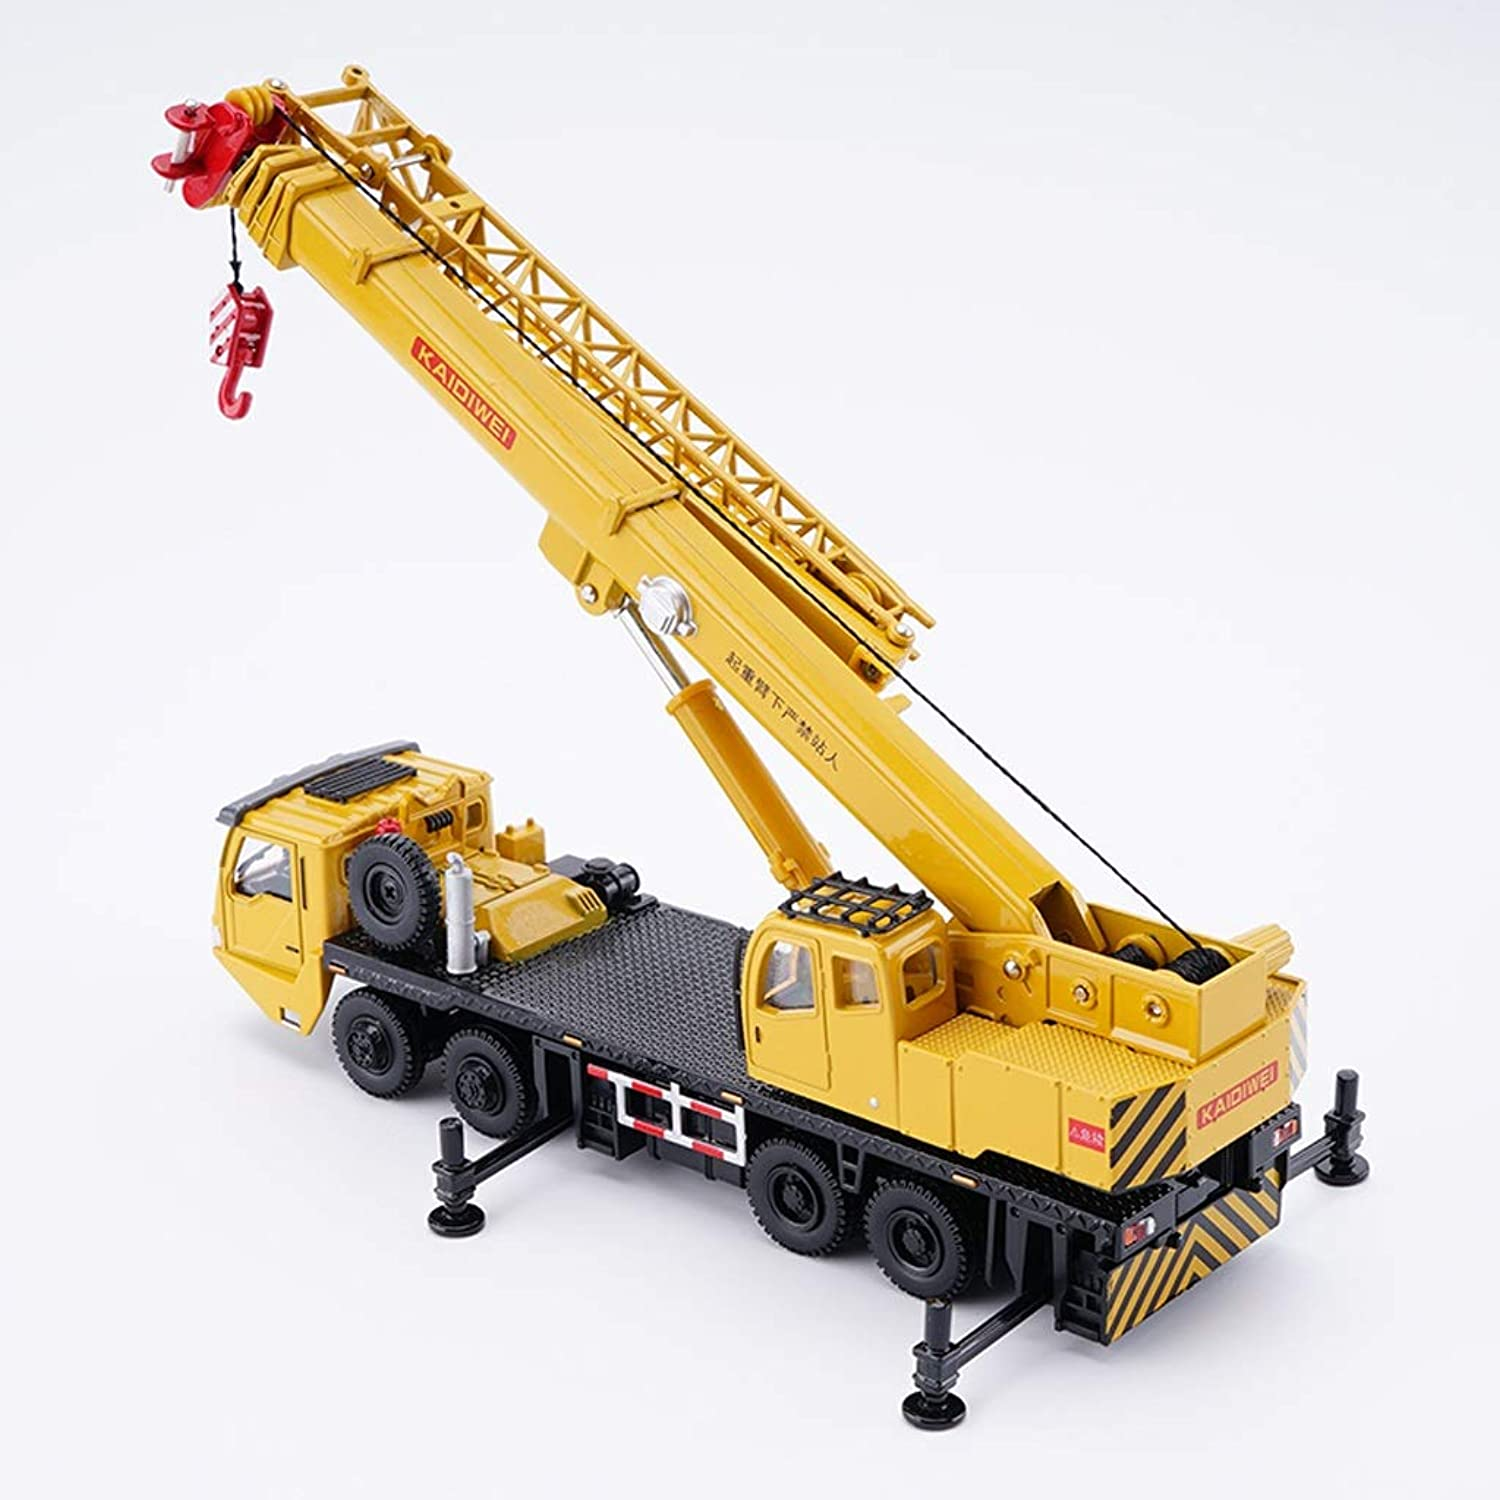 JIANPING Car Model 1 58 Crane Simulation Alloy Diecasting Toy Jewelry Engineering Car Collection Jewelry 19.5x5x6CM Model car